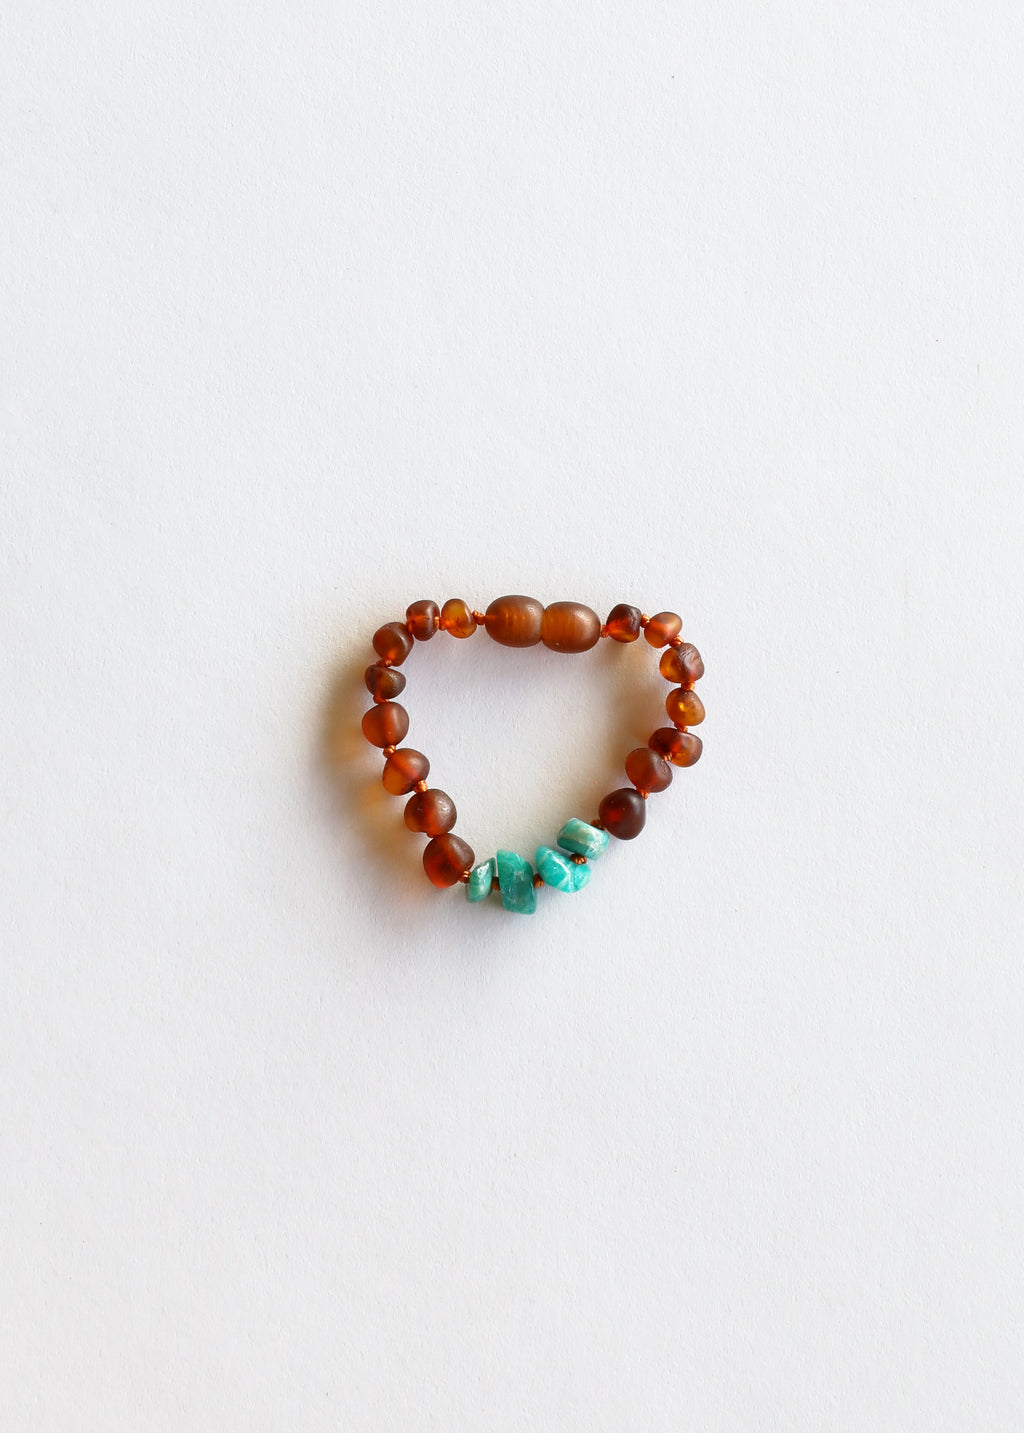 Raw Cognac Amber + Green Amazonite || Kids Anklet or Bracelet